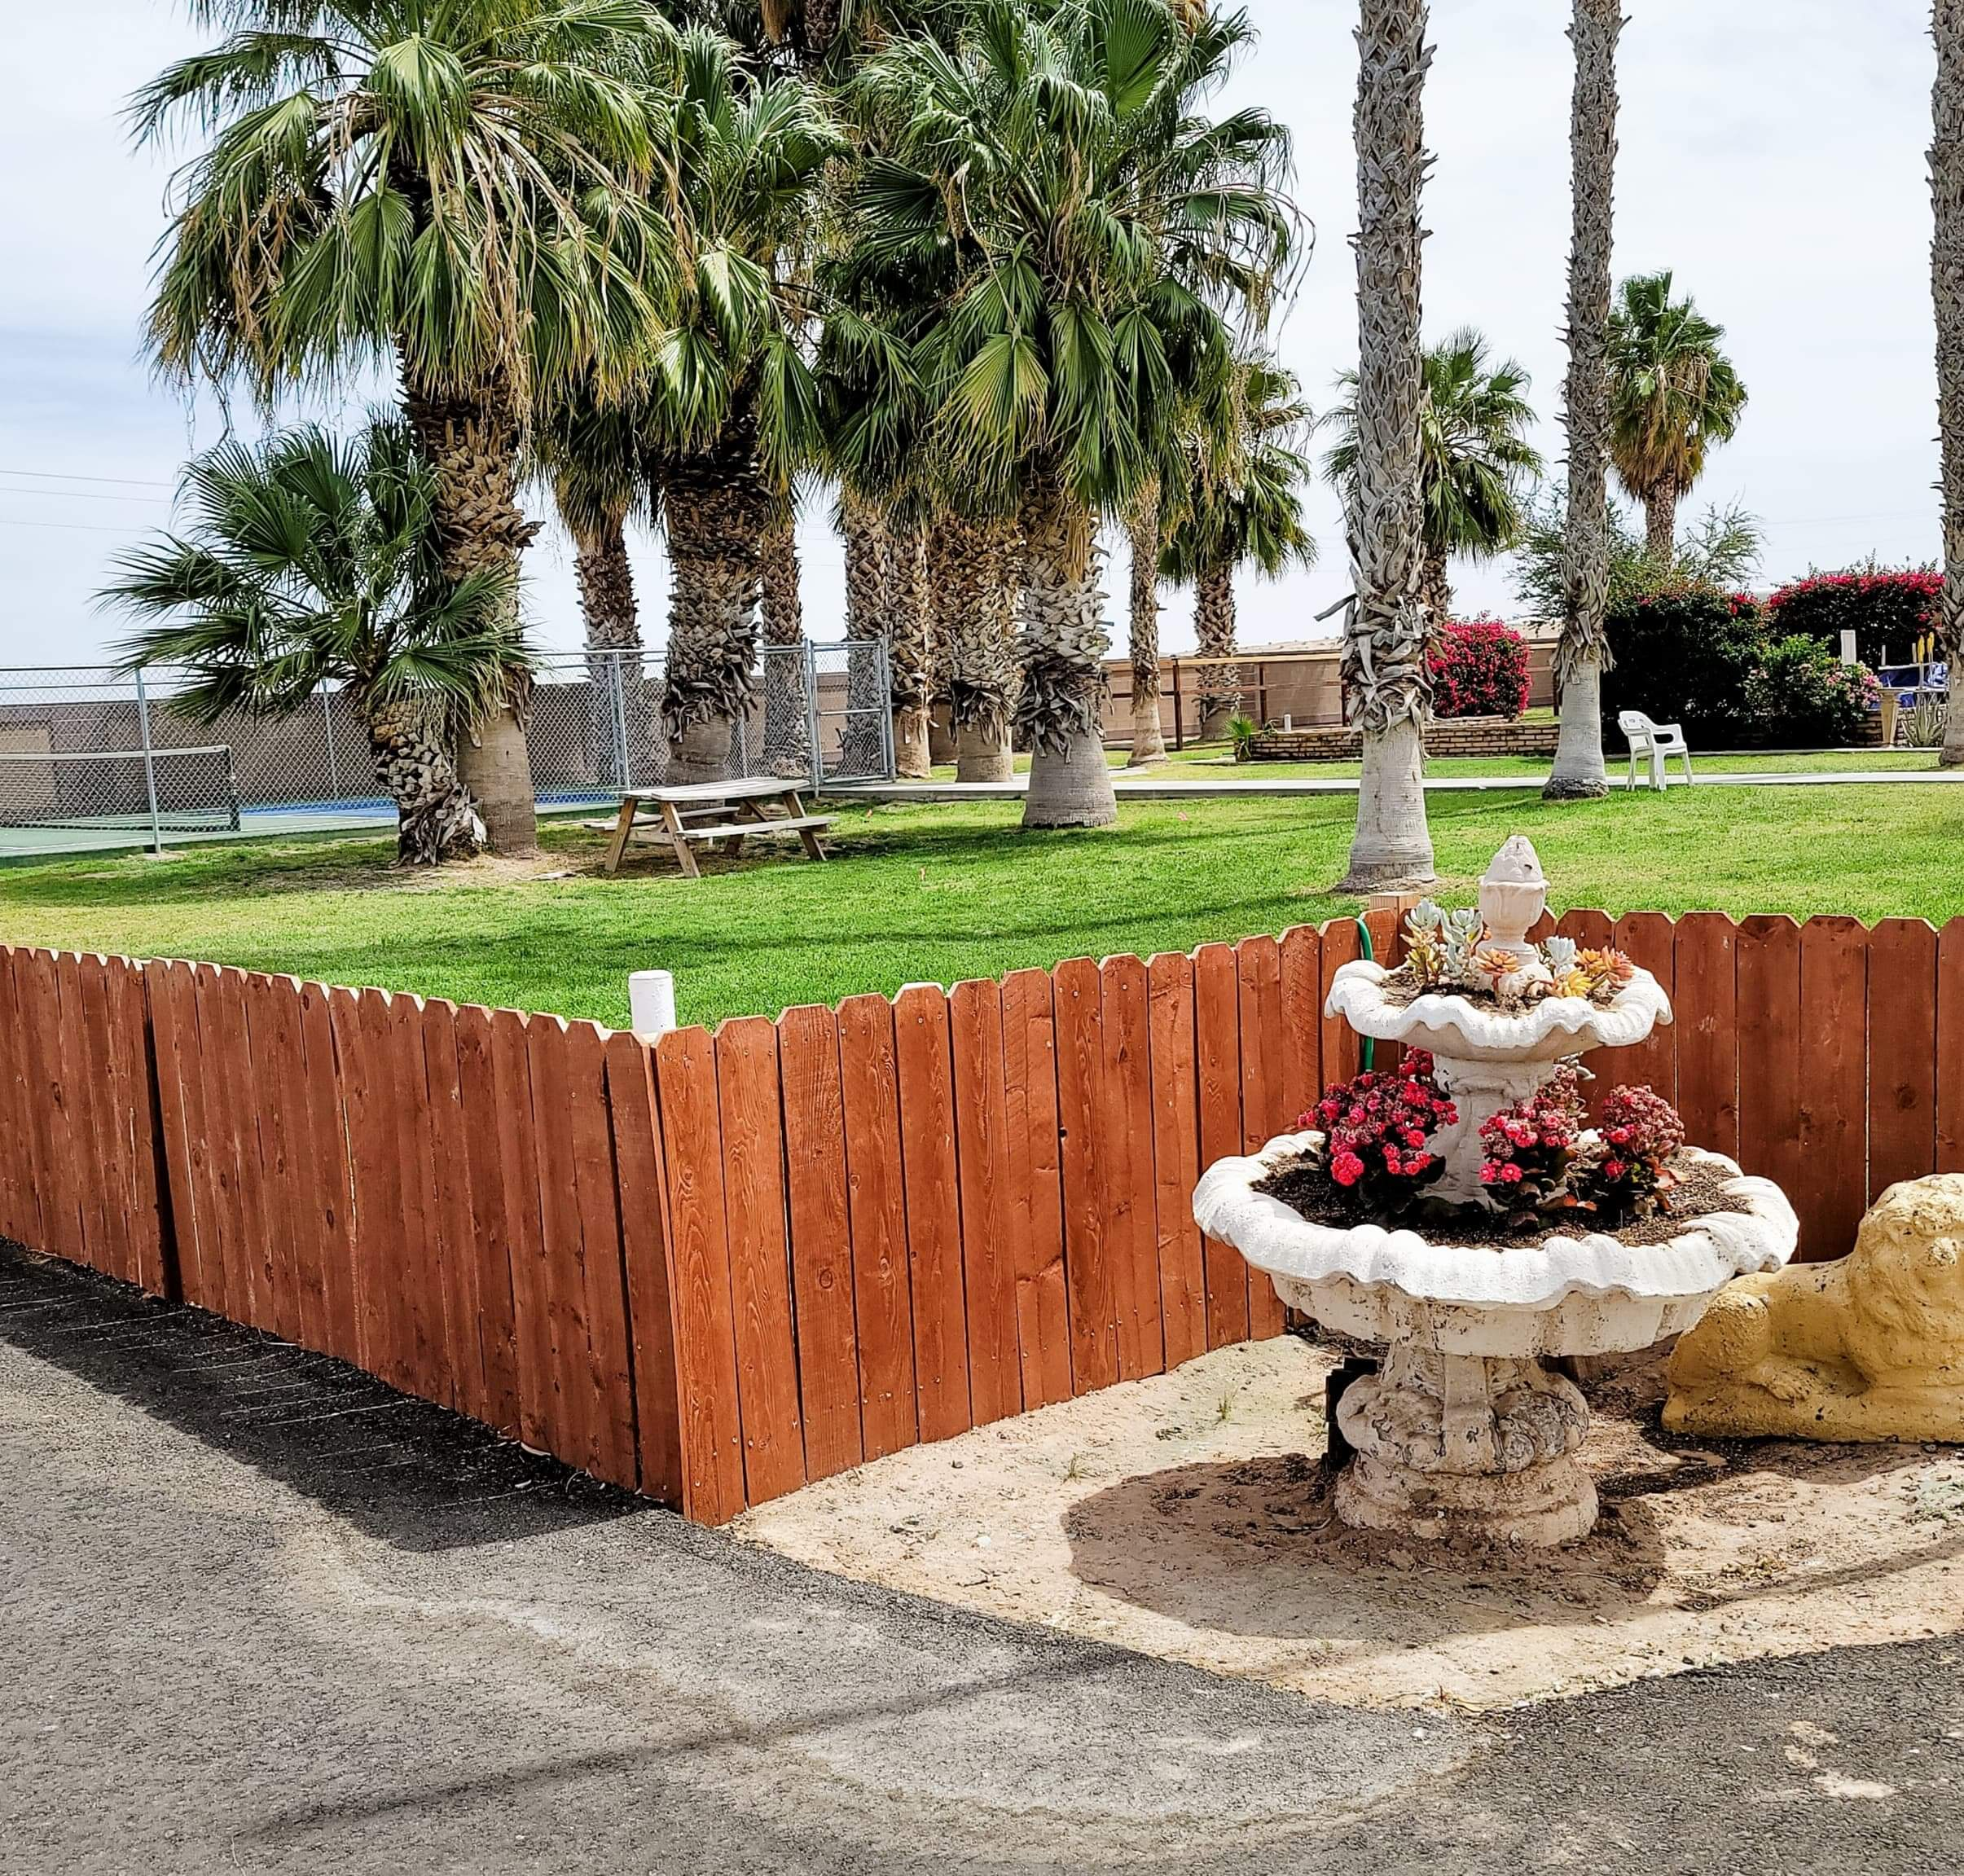 Fountain in front of brown orange fence and greenery behind with a patch of tall palm trees.